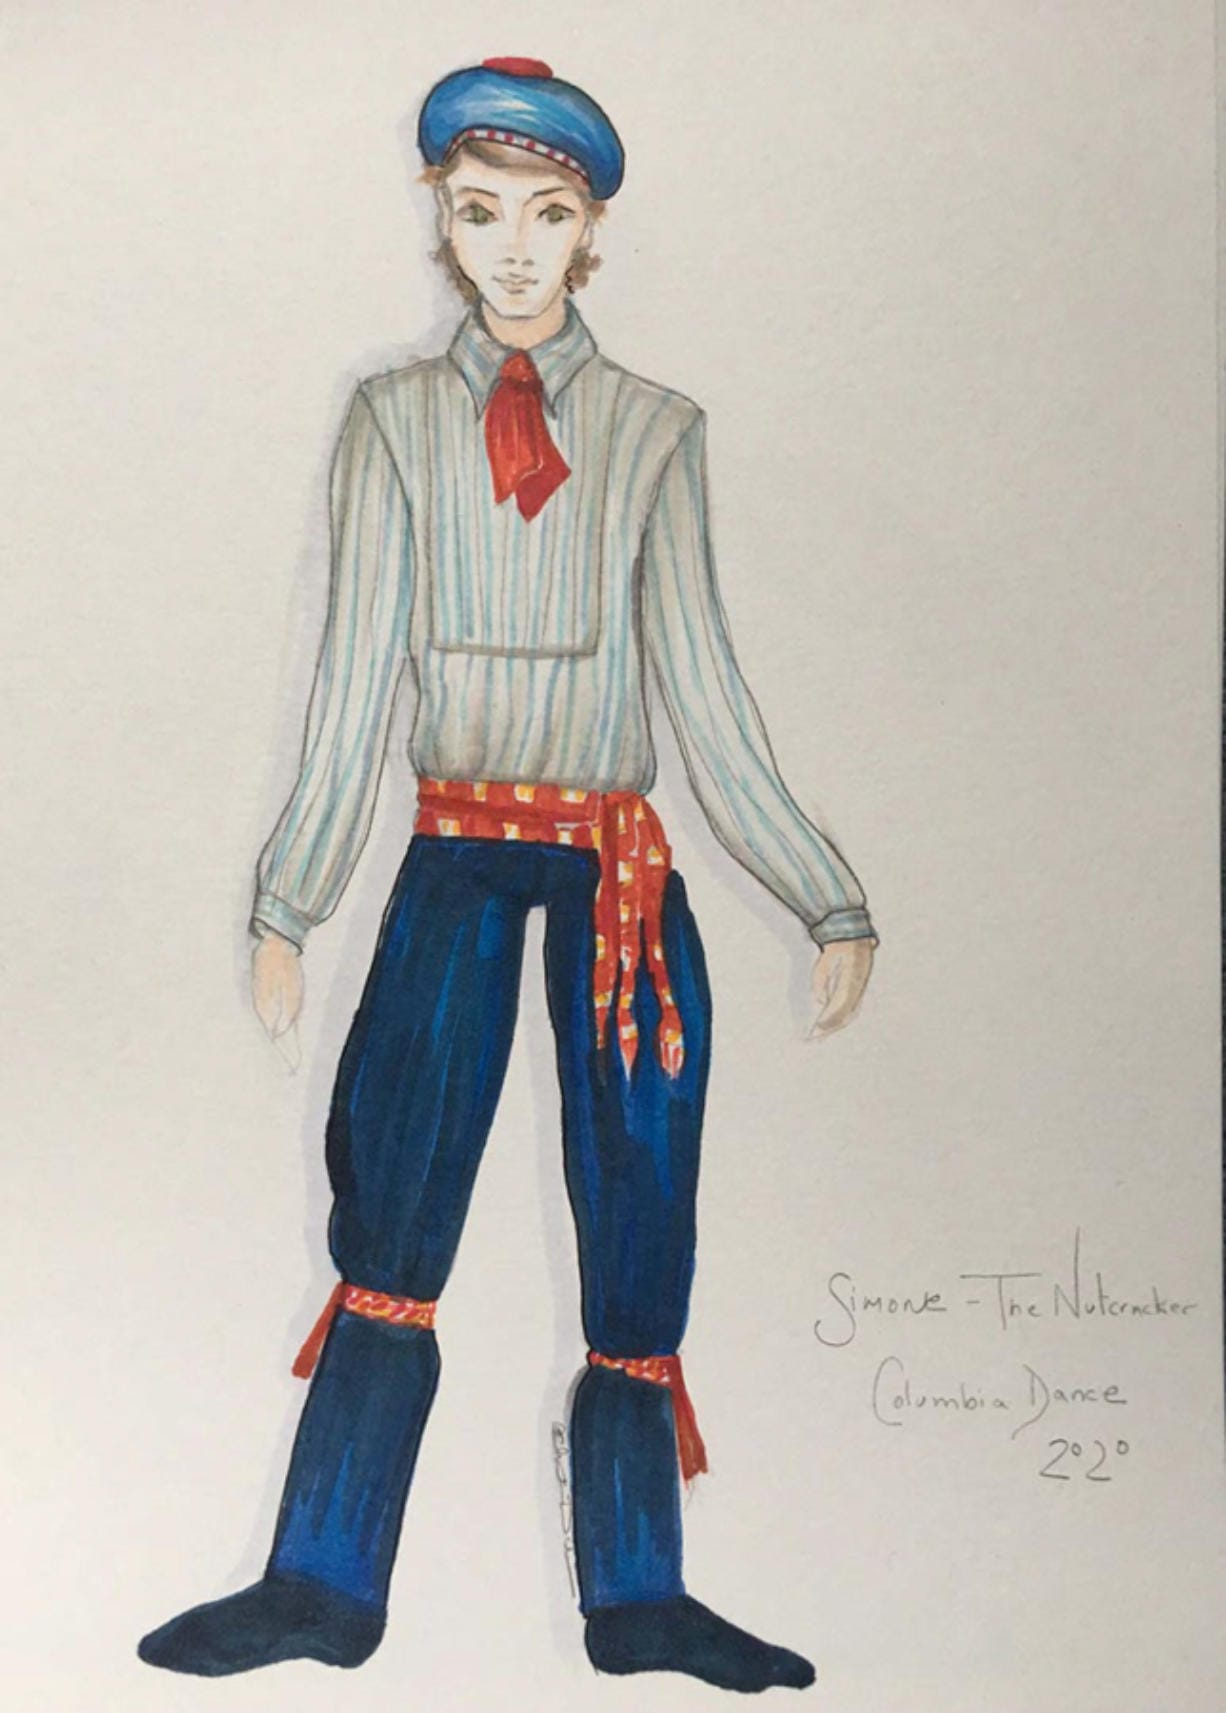 """A costume design concept for a new, localized version of """"The Nutcracker"""" to be performed by Columbia Dance starting in 2020. The costumes are being created by Christine Darch, a New York-based designer, and paid for with a new public grant program open to local art and culture organizations. (Renderings courtesy of Becky Moore)"""